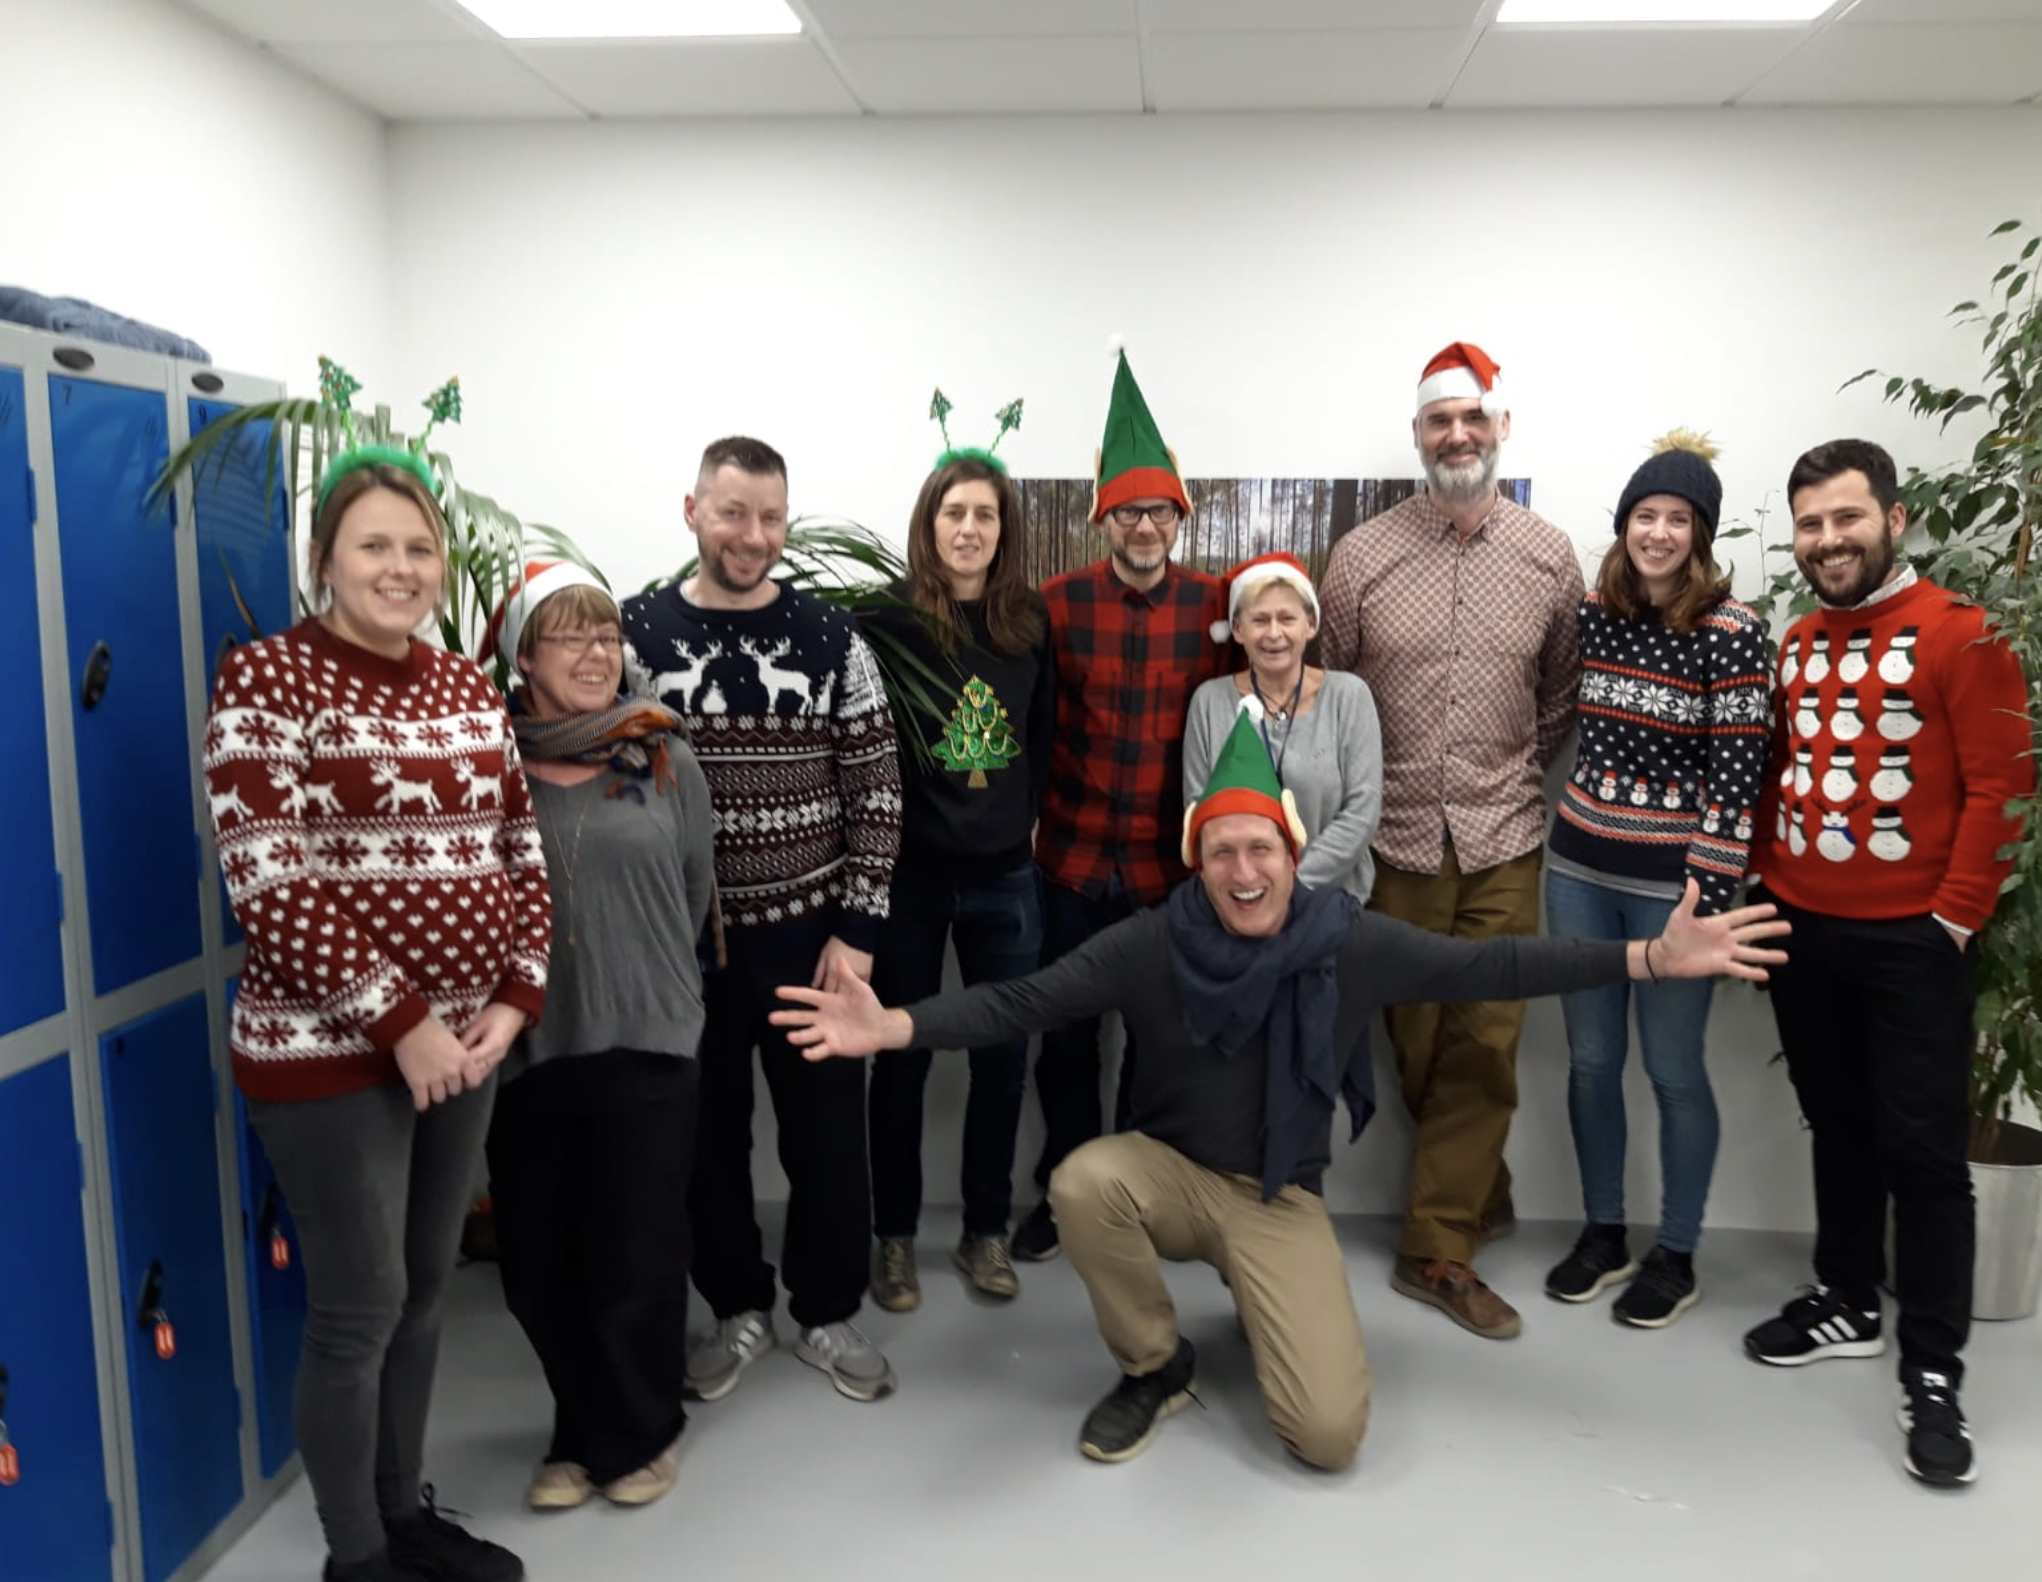 Above: The Blue Eyed Sun team donned their Christmas jumpers as part of the company's Festive Friday action, which saw them write and send over 200 cards.